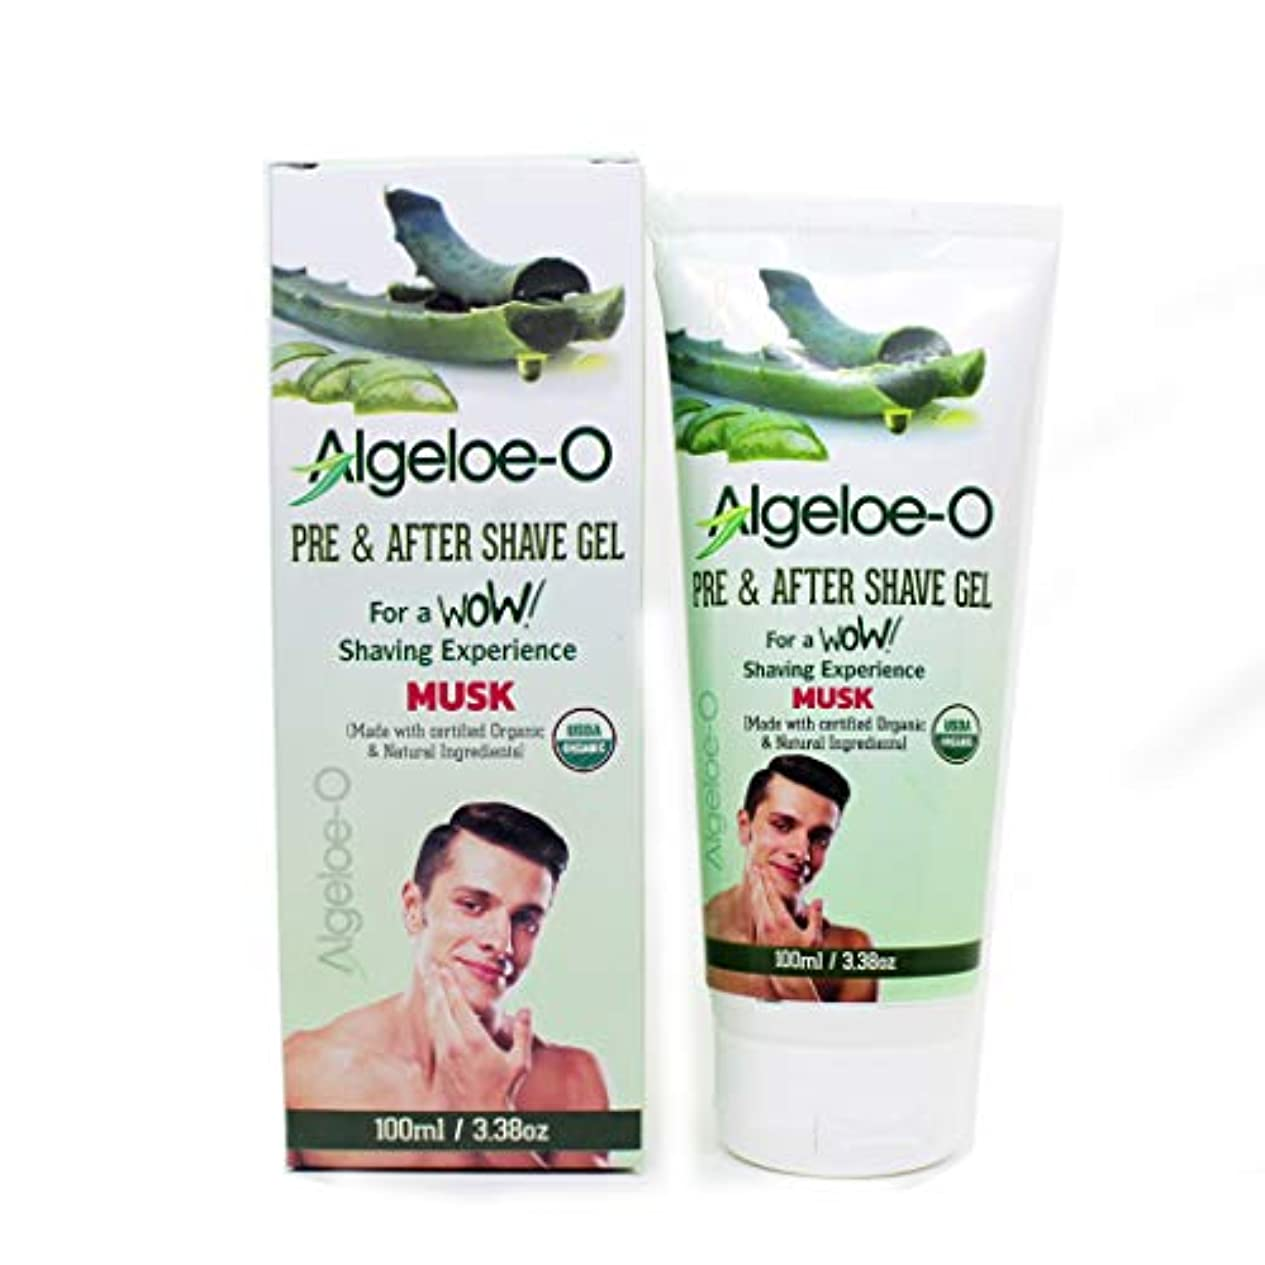 賛辞退屈させるふつうAloevera Pre And After Shave Gel - Algeloe O Made With Certified USDA Organic And Natural Ingredients - Musk 100 ml (3.38 Oz.)